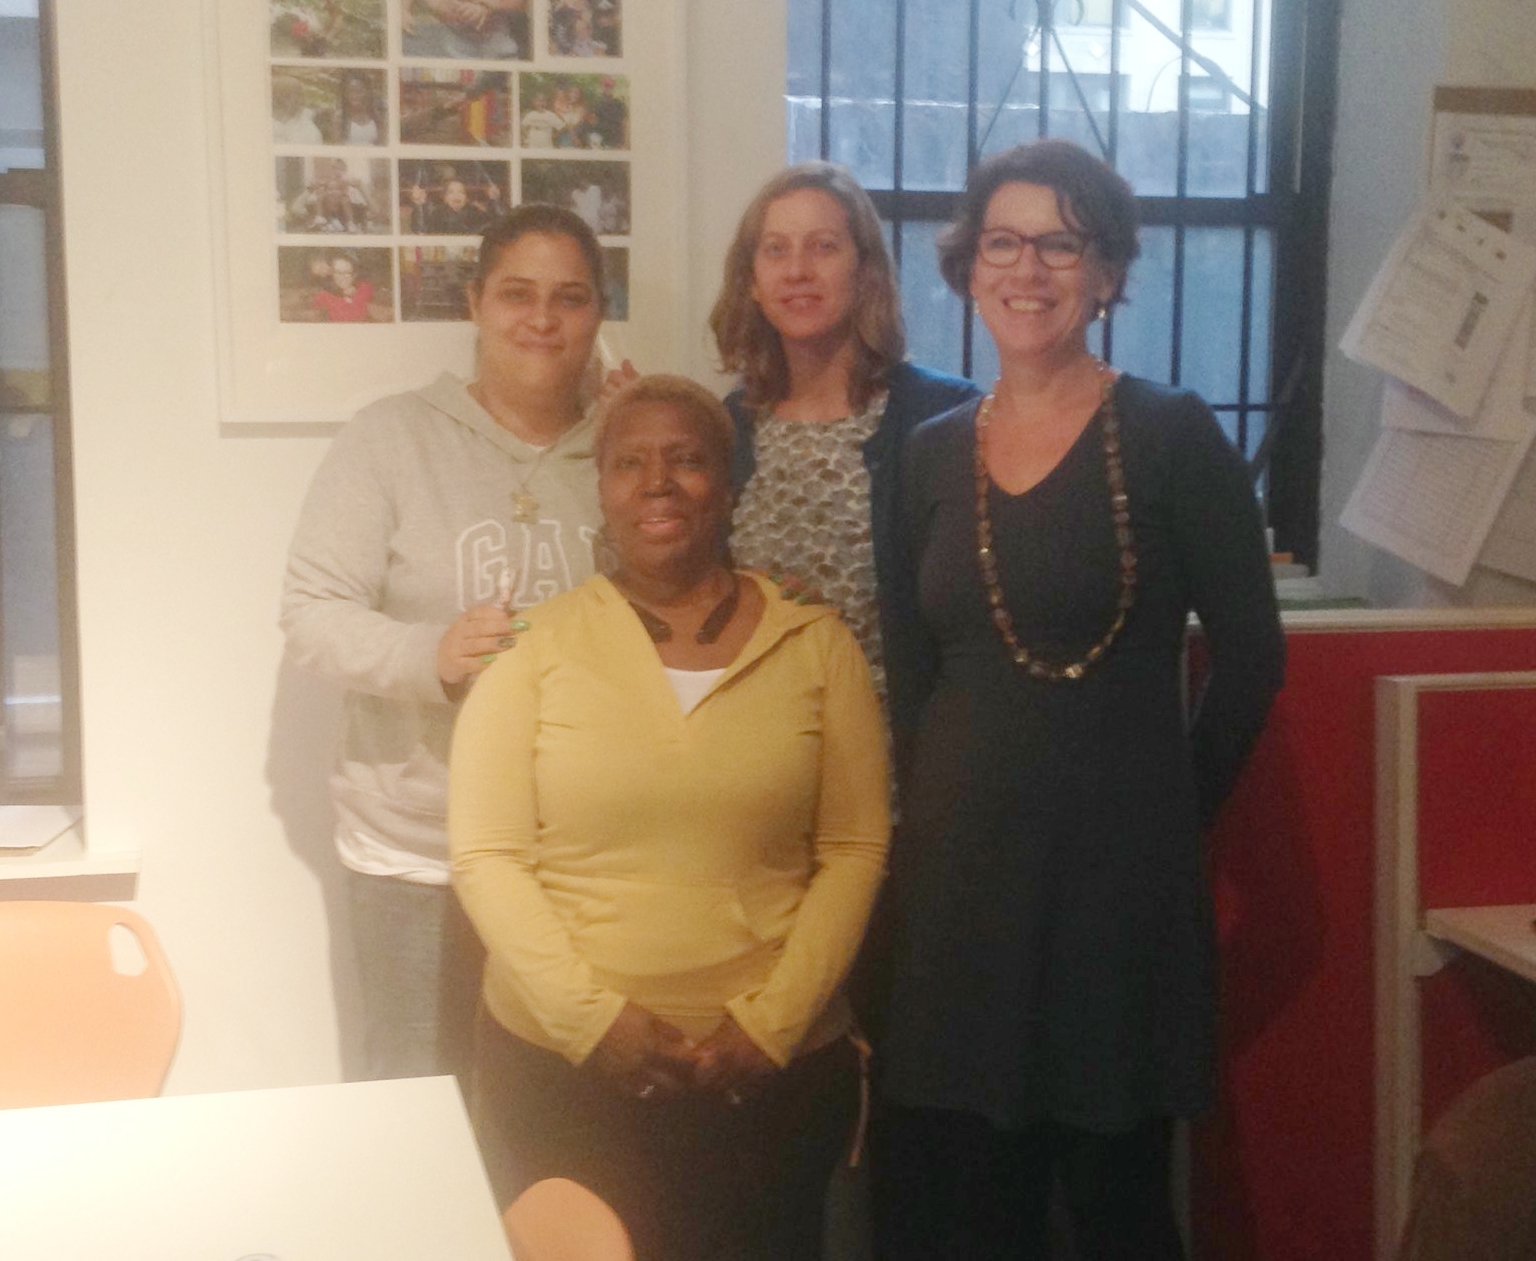 Jeanette, Robbyne, Nora and me at Rise Magazine. This organisation was developed not long after the CWOP and they have a long history of amplifying parent's stories and voices to bring about change.